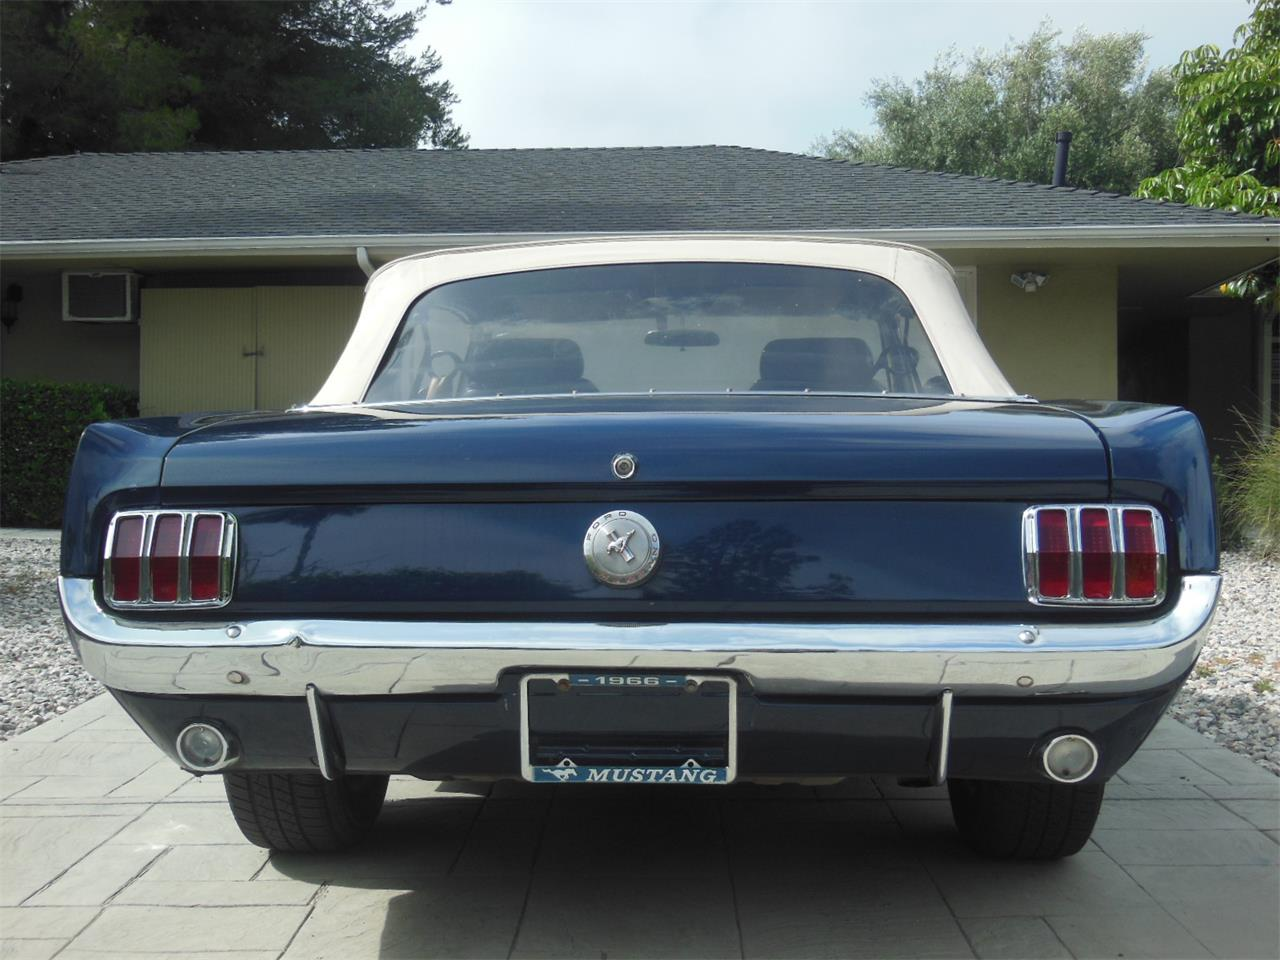 Large Picture of 1966 Mustang located in West Hills California Offered by a Private Seller - QEXU